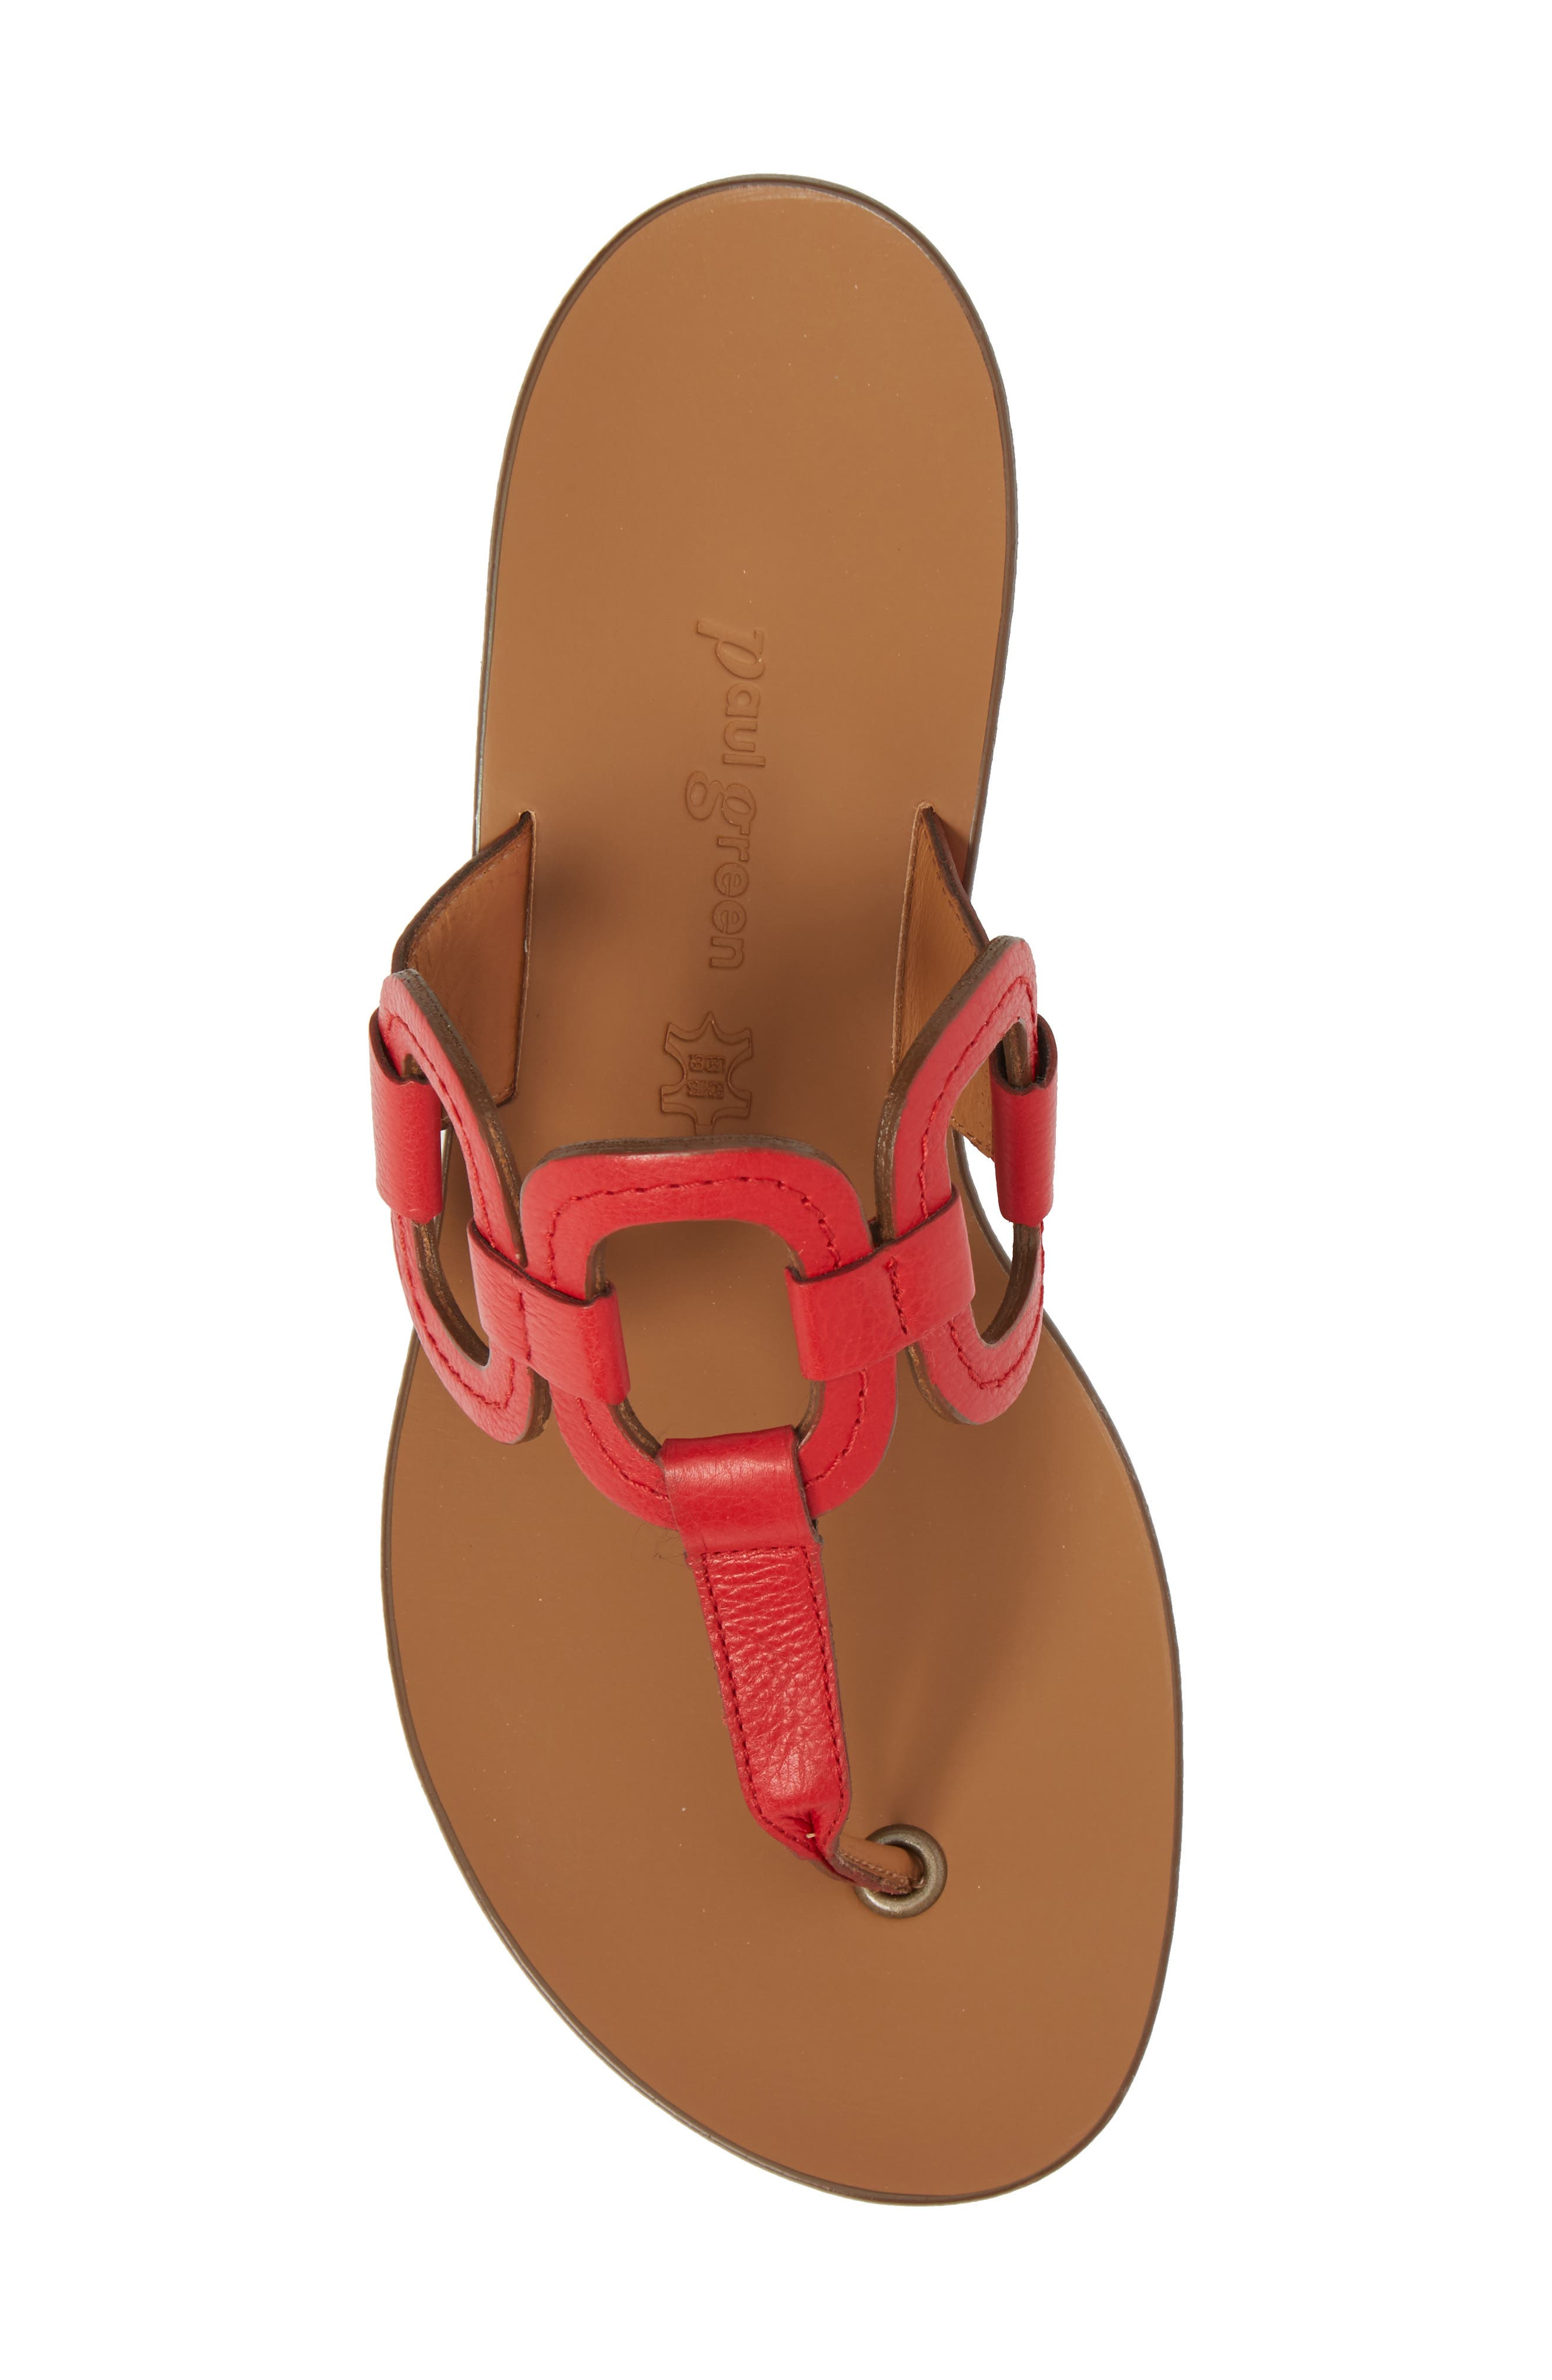 Lanai Flip-Flop,                             Alternate thumbnail 5, color,                             Red Leather